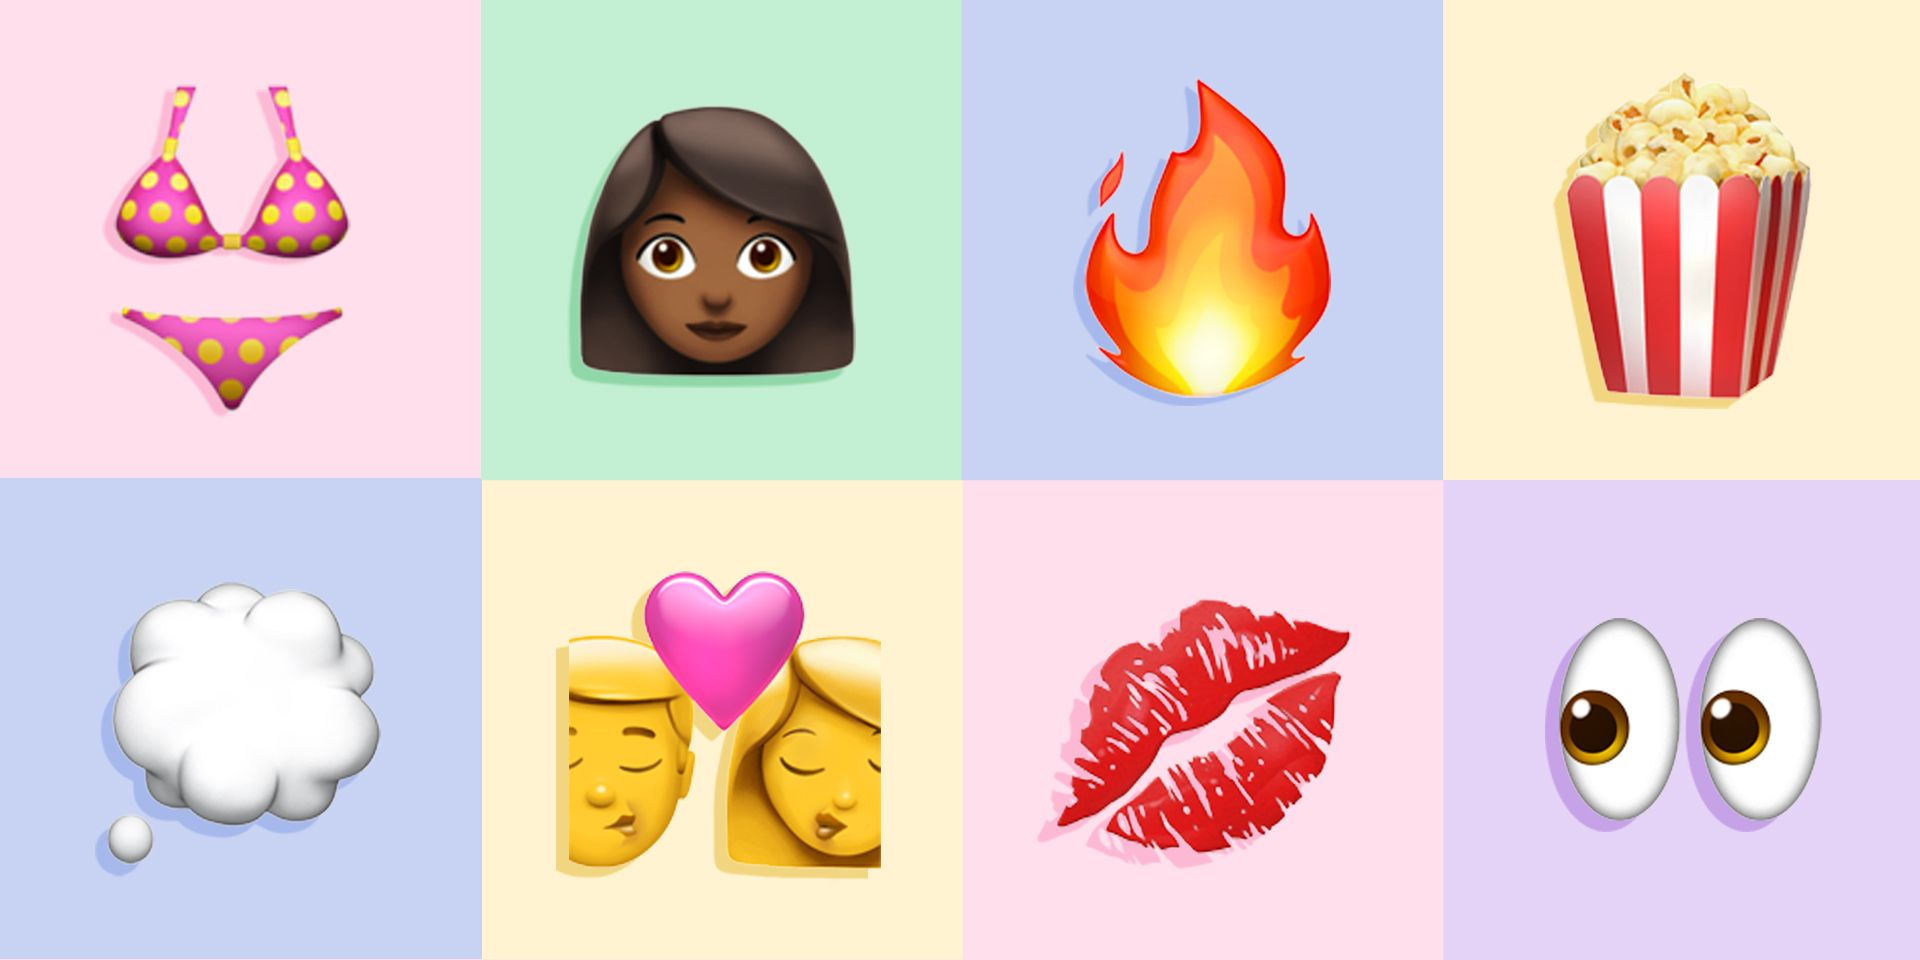 12 Hook-Up Emoji Combos For When You're Down to Make Out